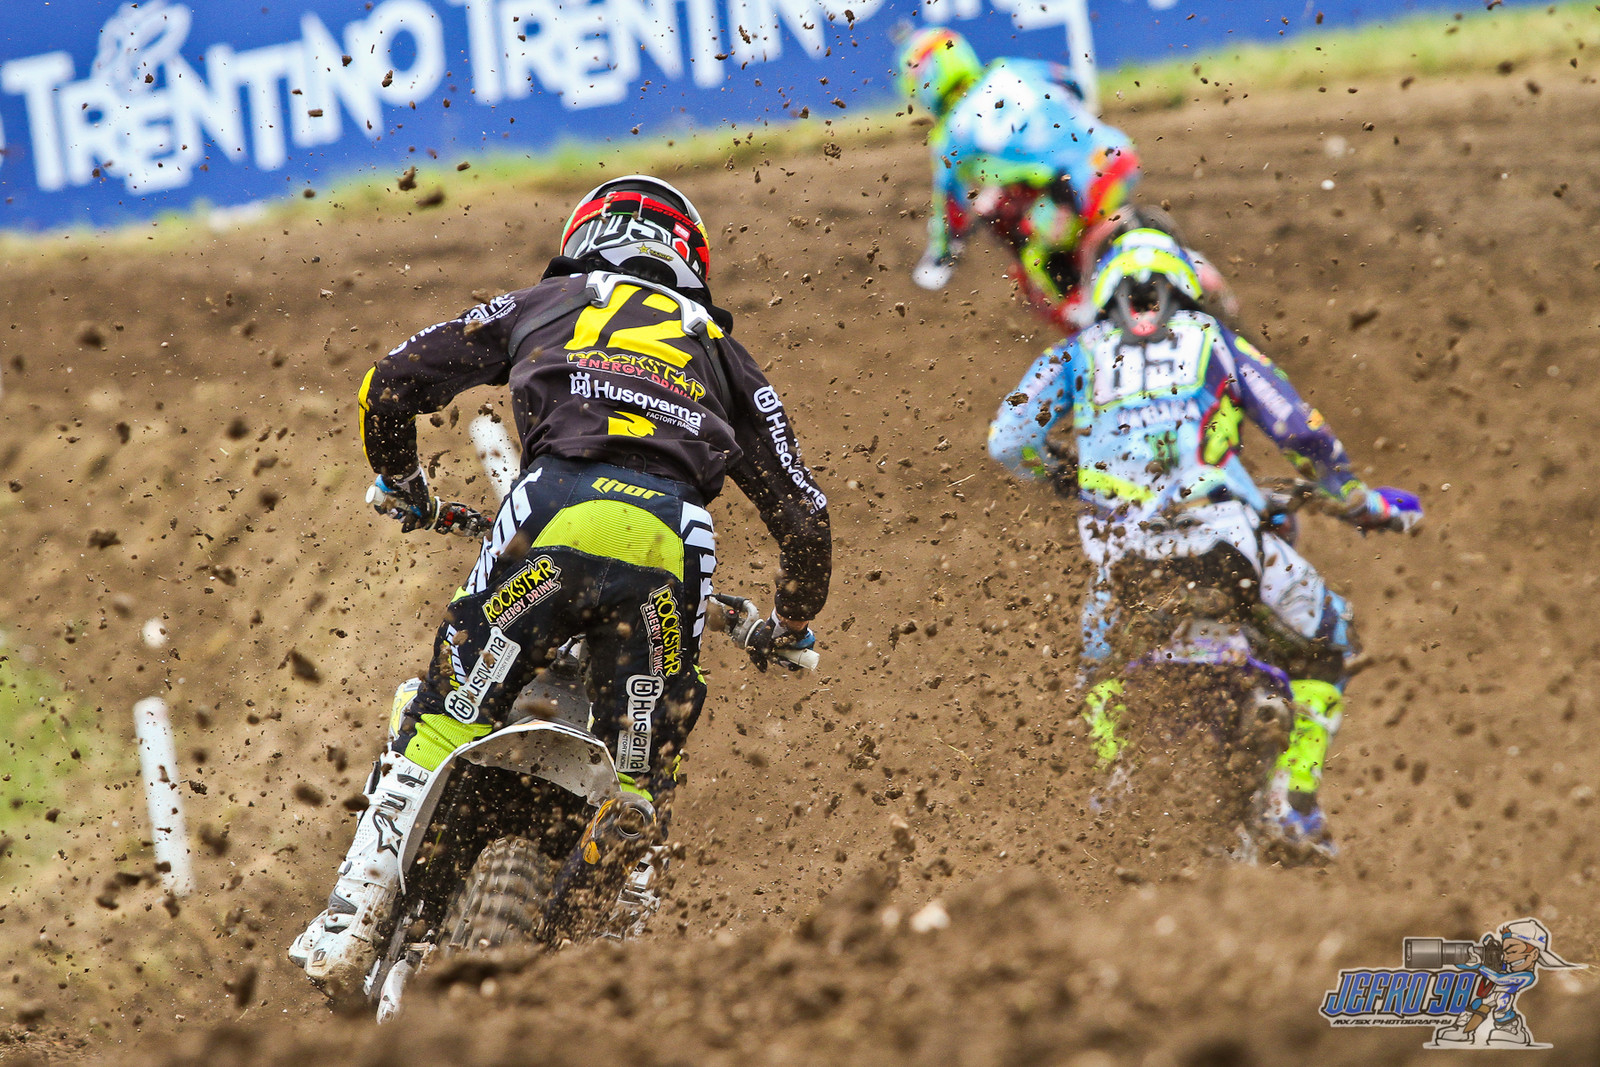 Max Nagl - Photo Gallery: MXGP of Great Britain - Motocross Pictures - Vital MX